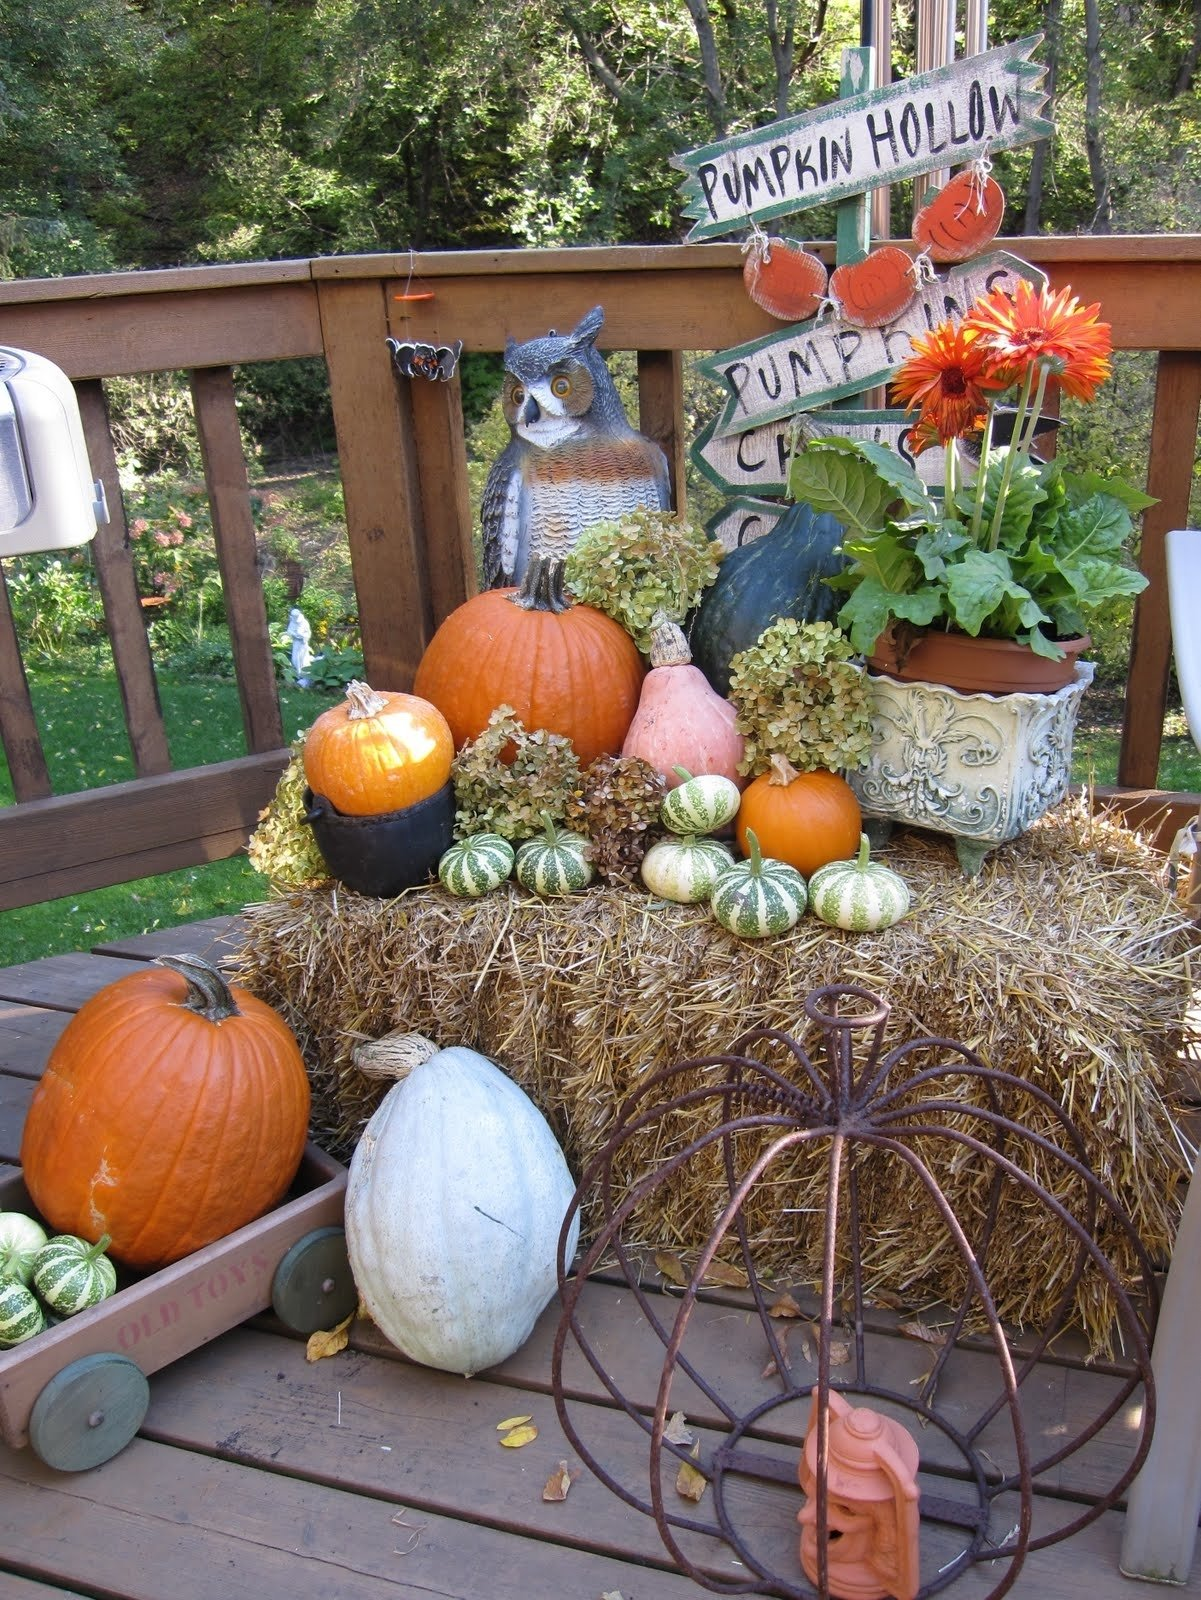 10 Awesome Fall Decorating Ideas For Outside outdoor fall decorating ideas fall decorating round bales hay bale 2020